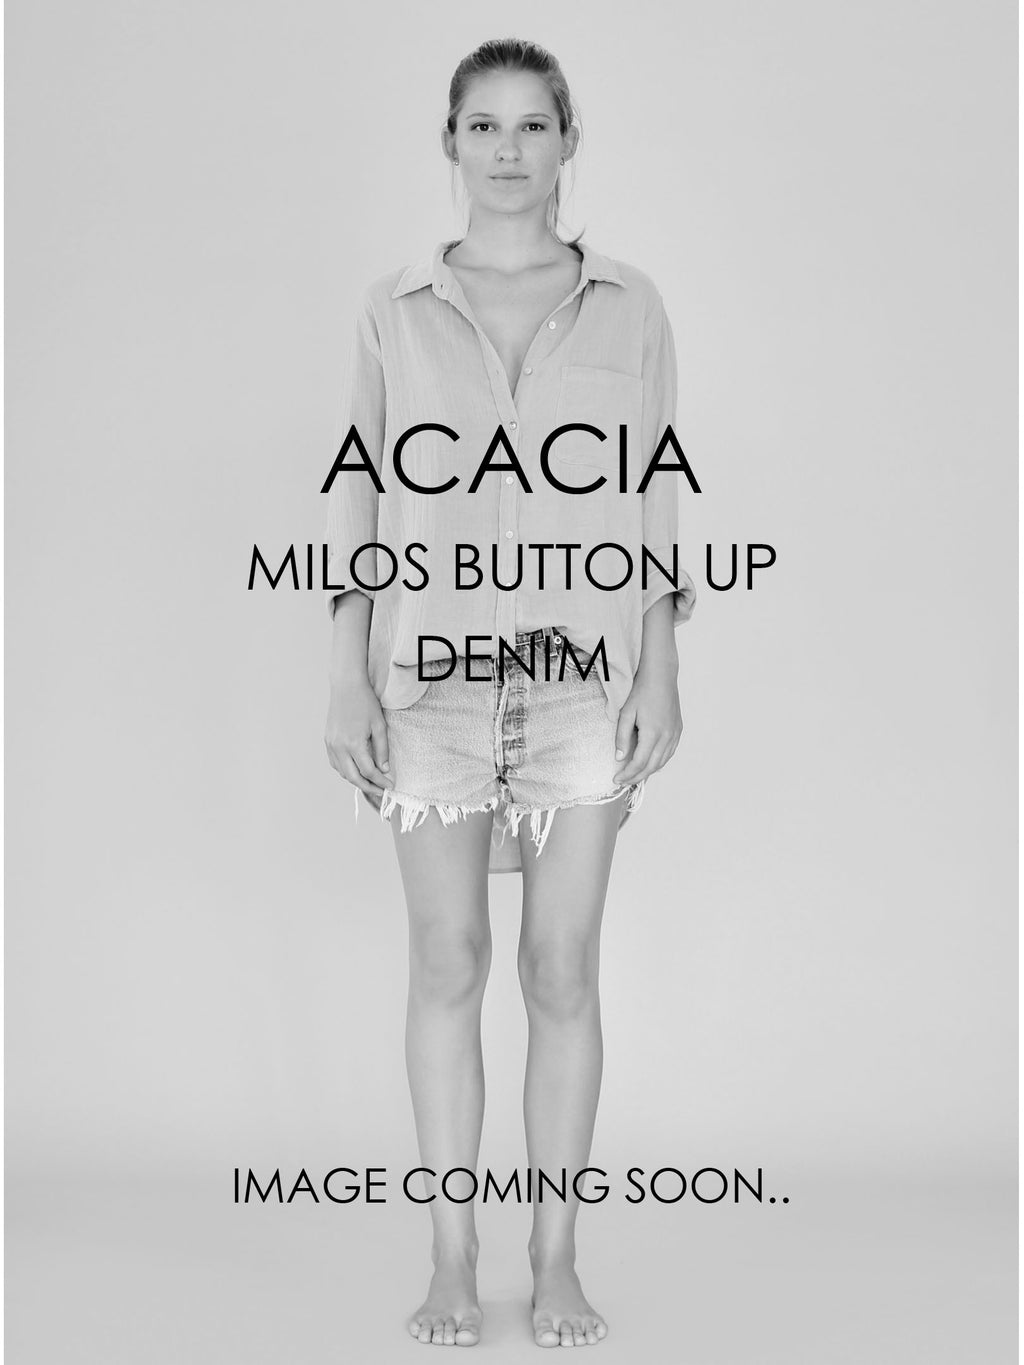 ACACIA Milos Button Up | Denim